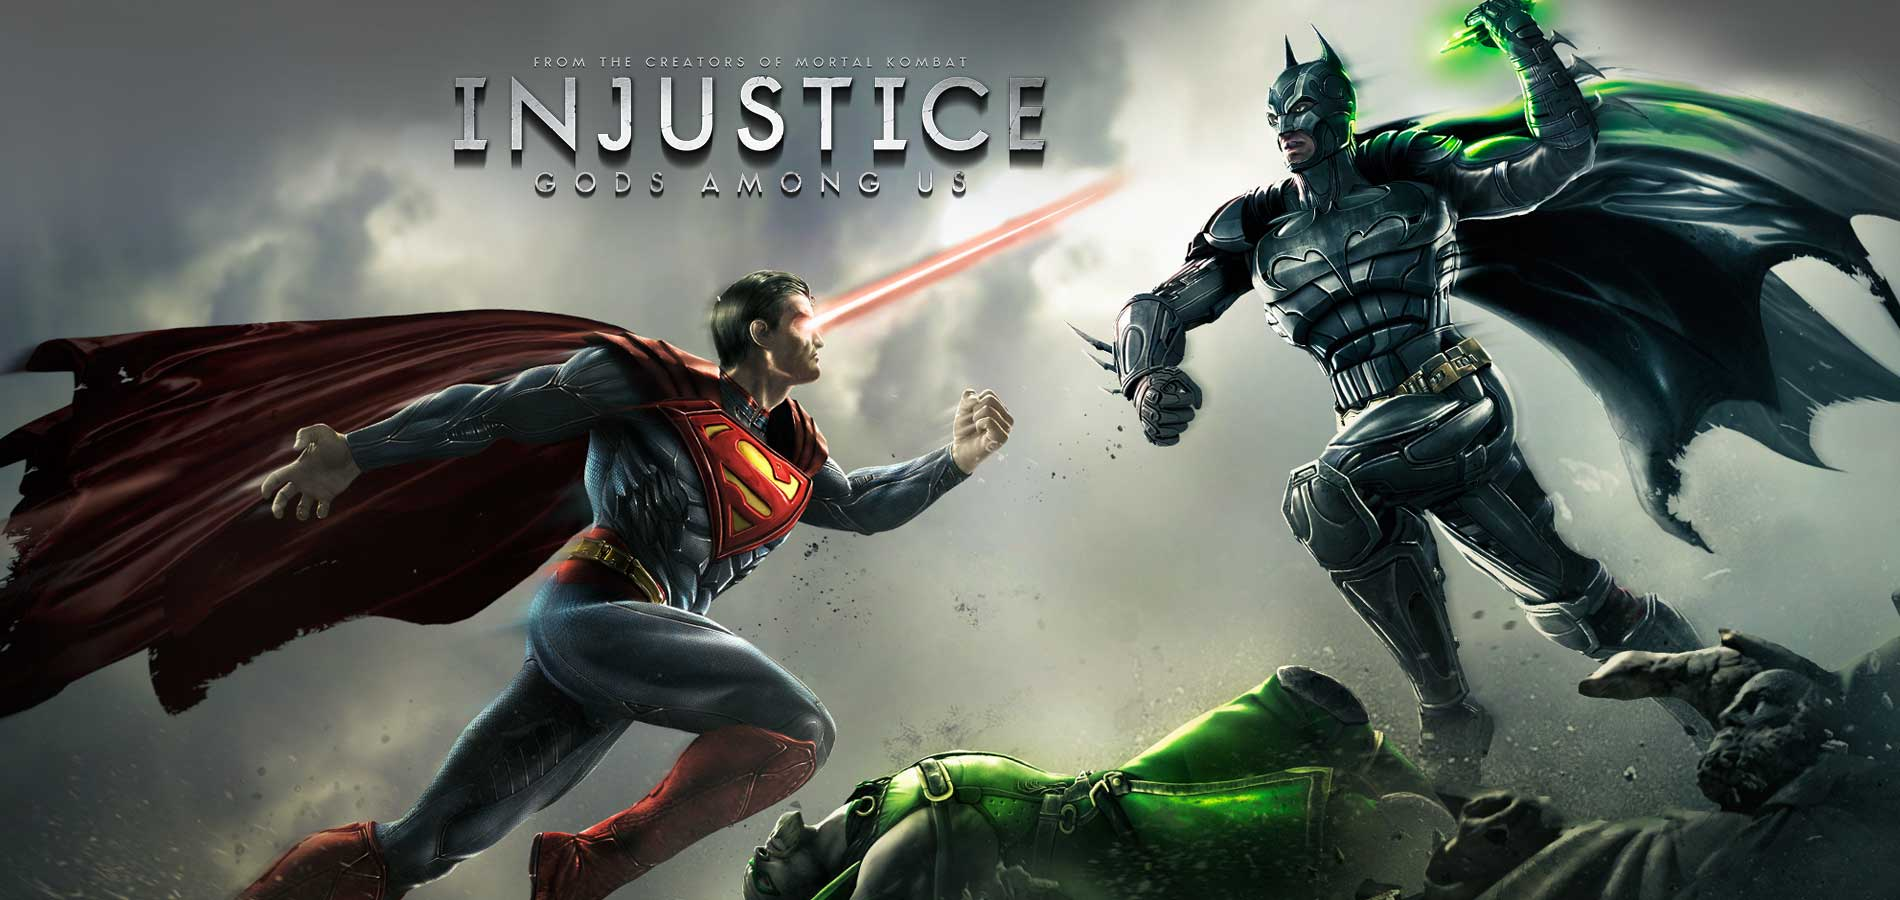 Injustice: Gods Among Us (2013)-Best cool fighting games for player love classical games